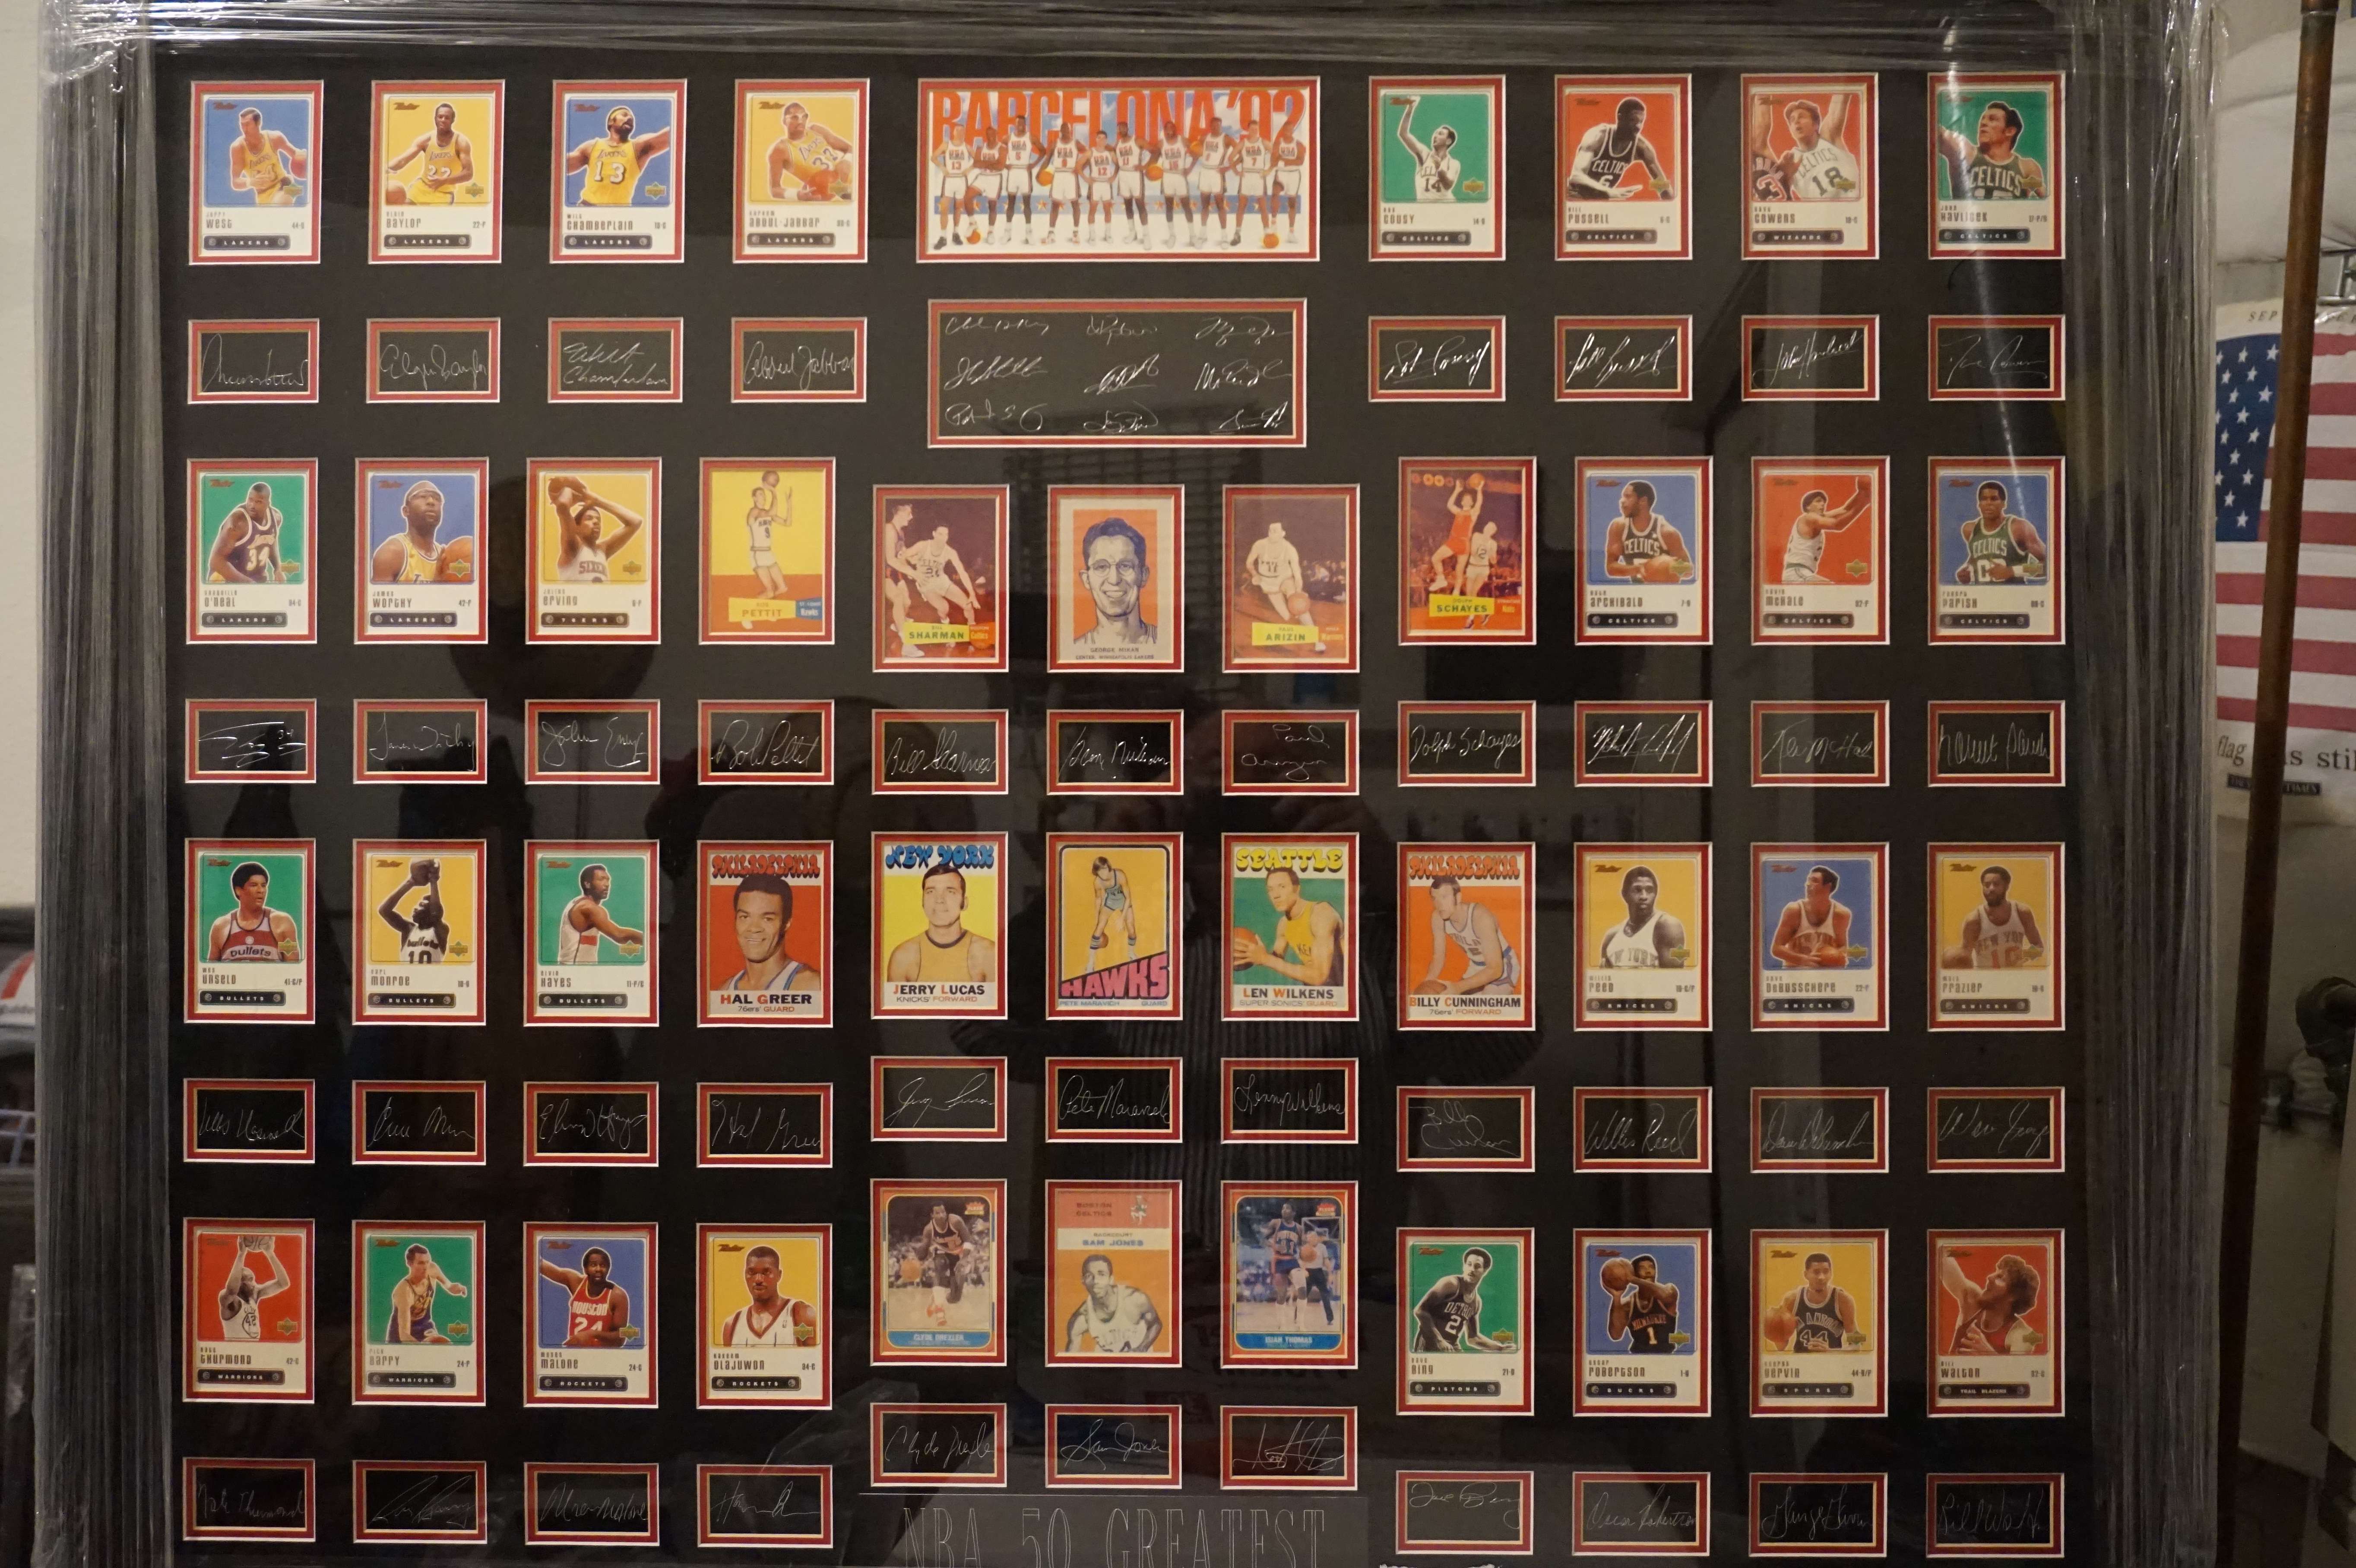 50 Greatest NBA Players' Cards